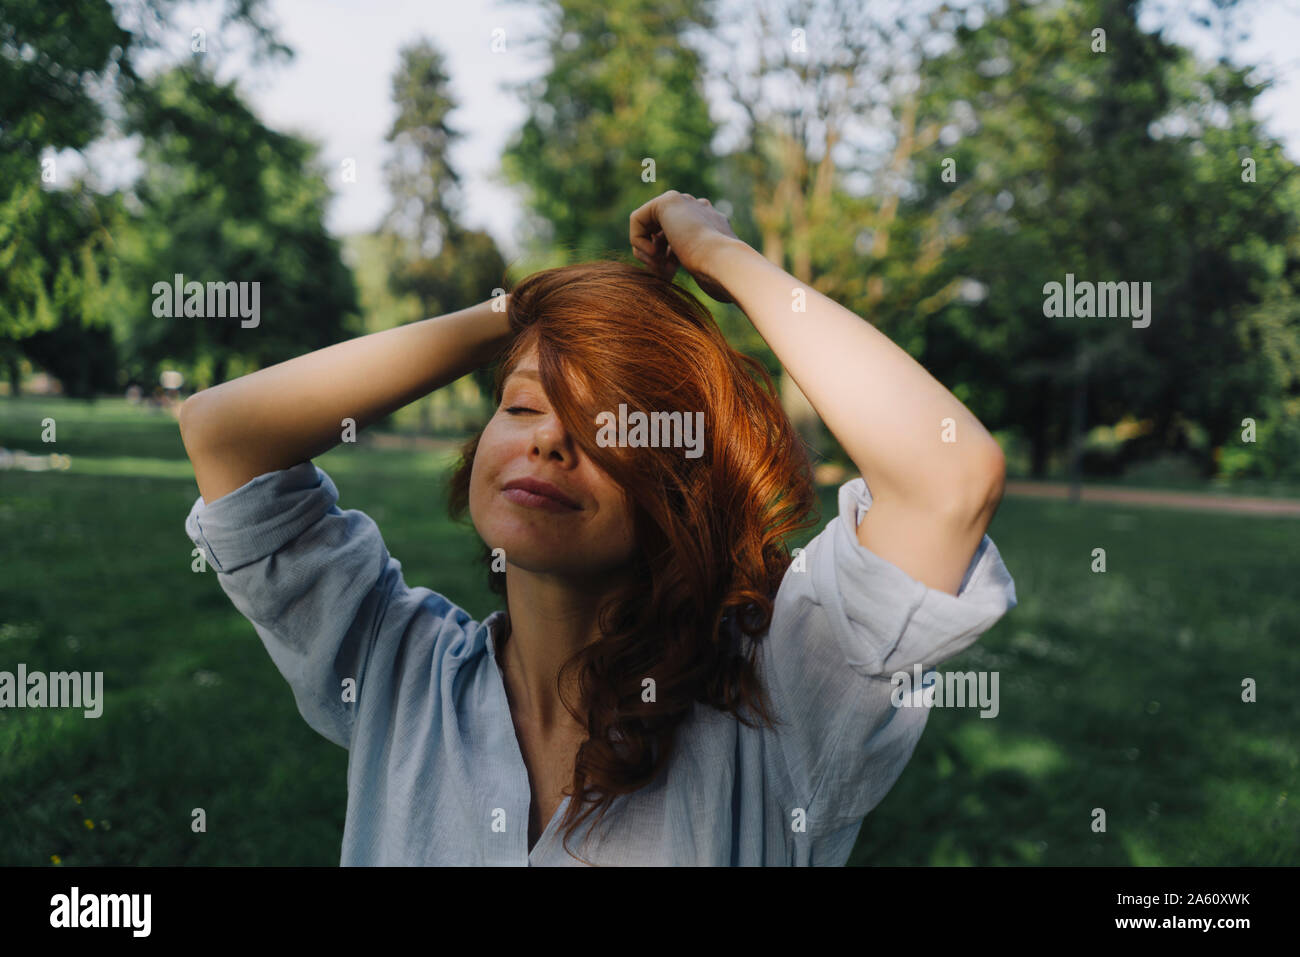 Portrait of redheaded woman in a park Stock Photo